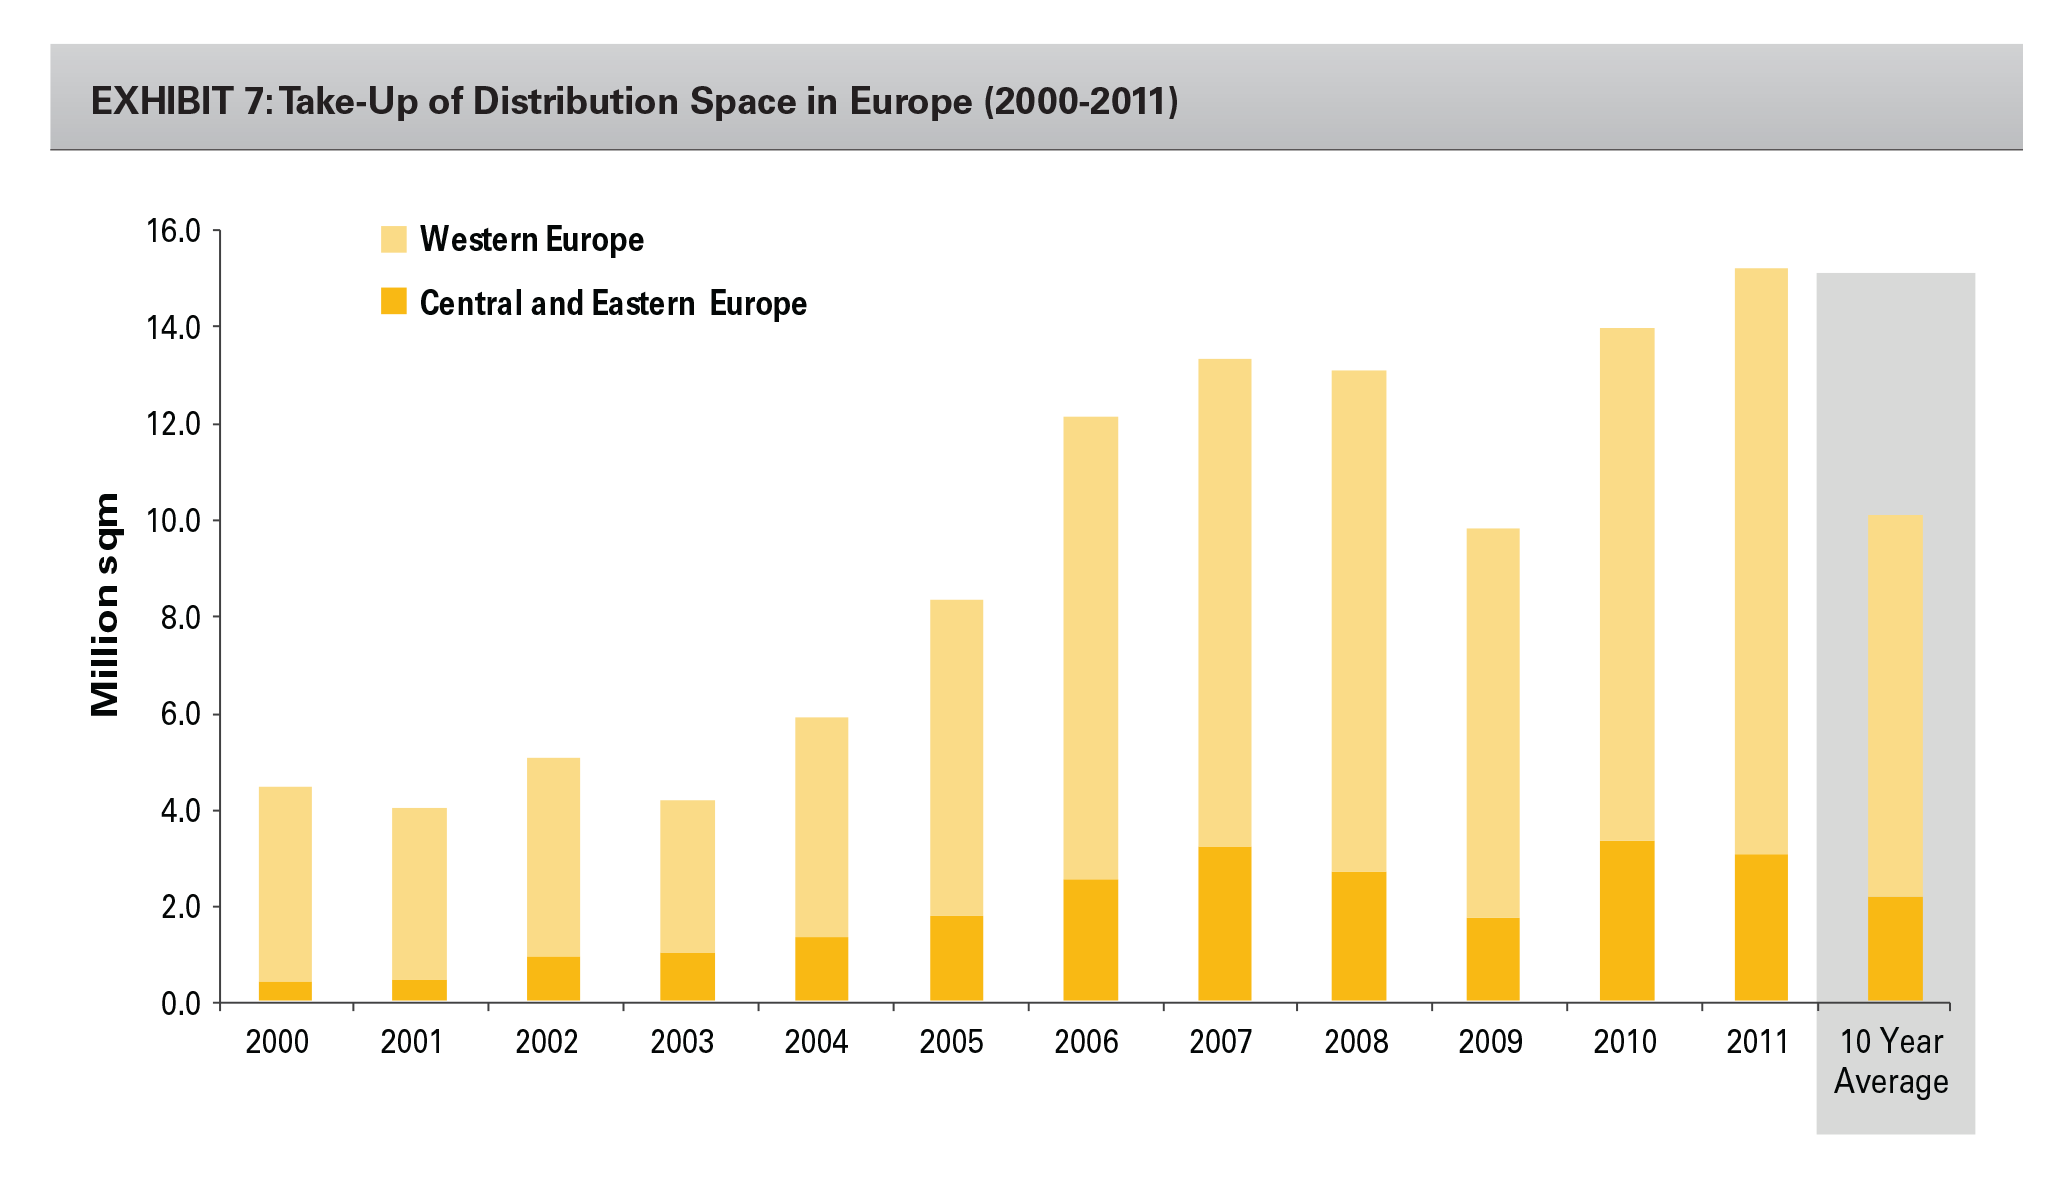 EXHIBIT 7: Take-Up of Distribution Space in Europe (2000-2011)